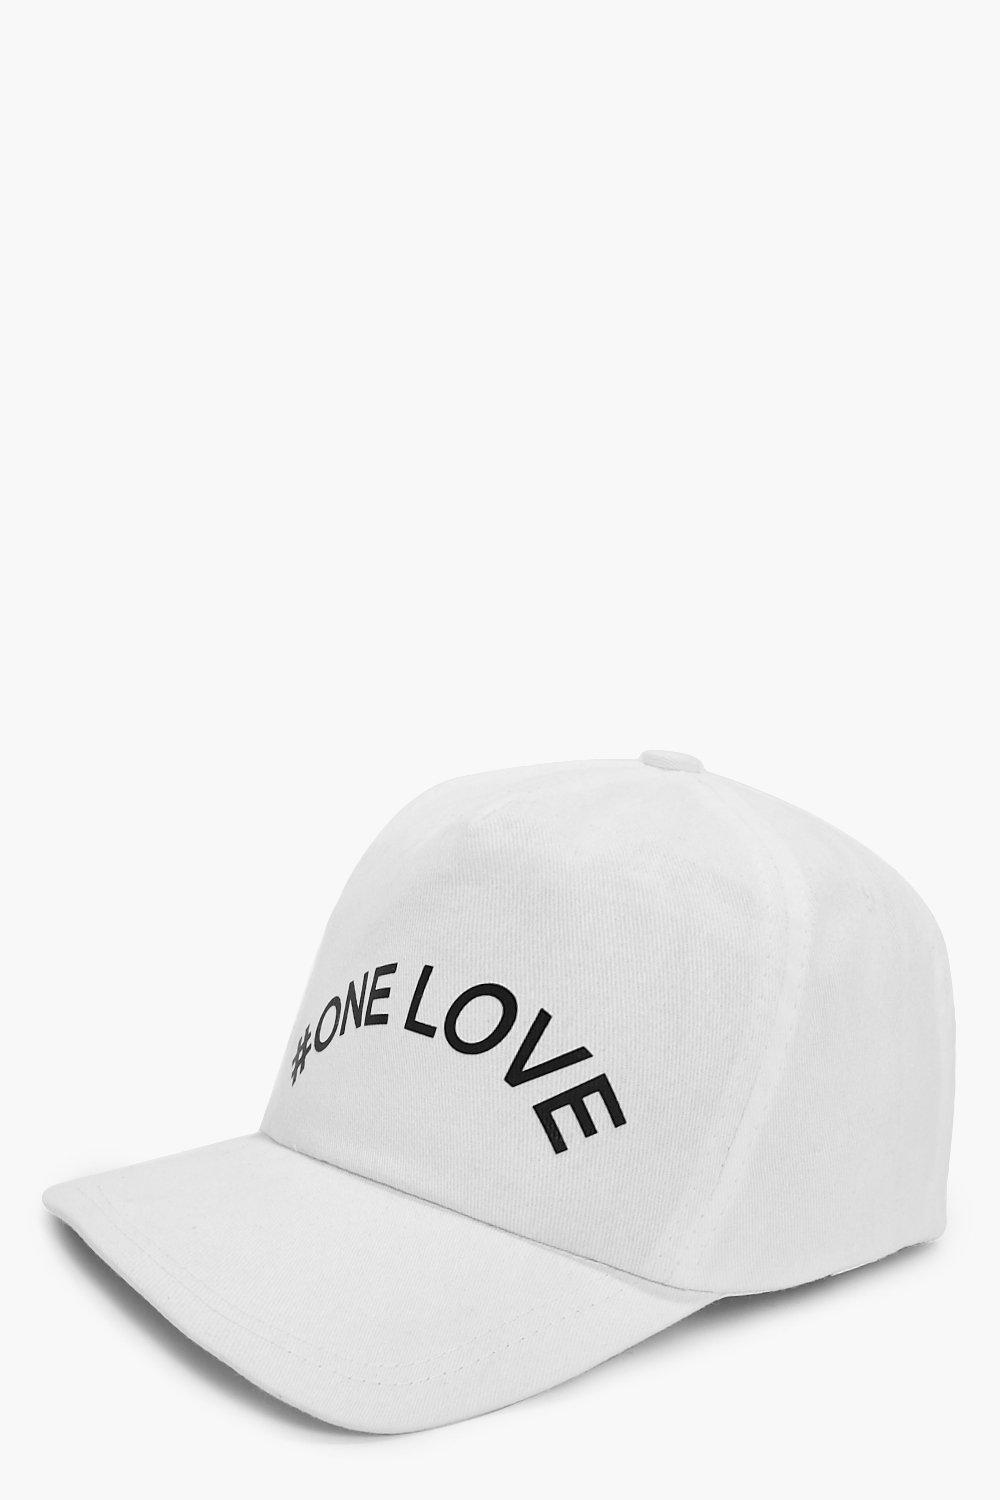 Cap - One Love - white - Charity Cap - One Love -